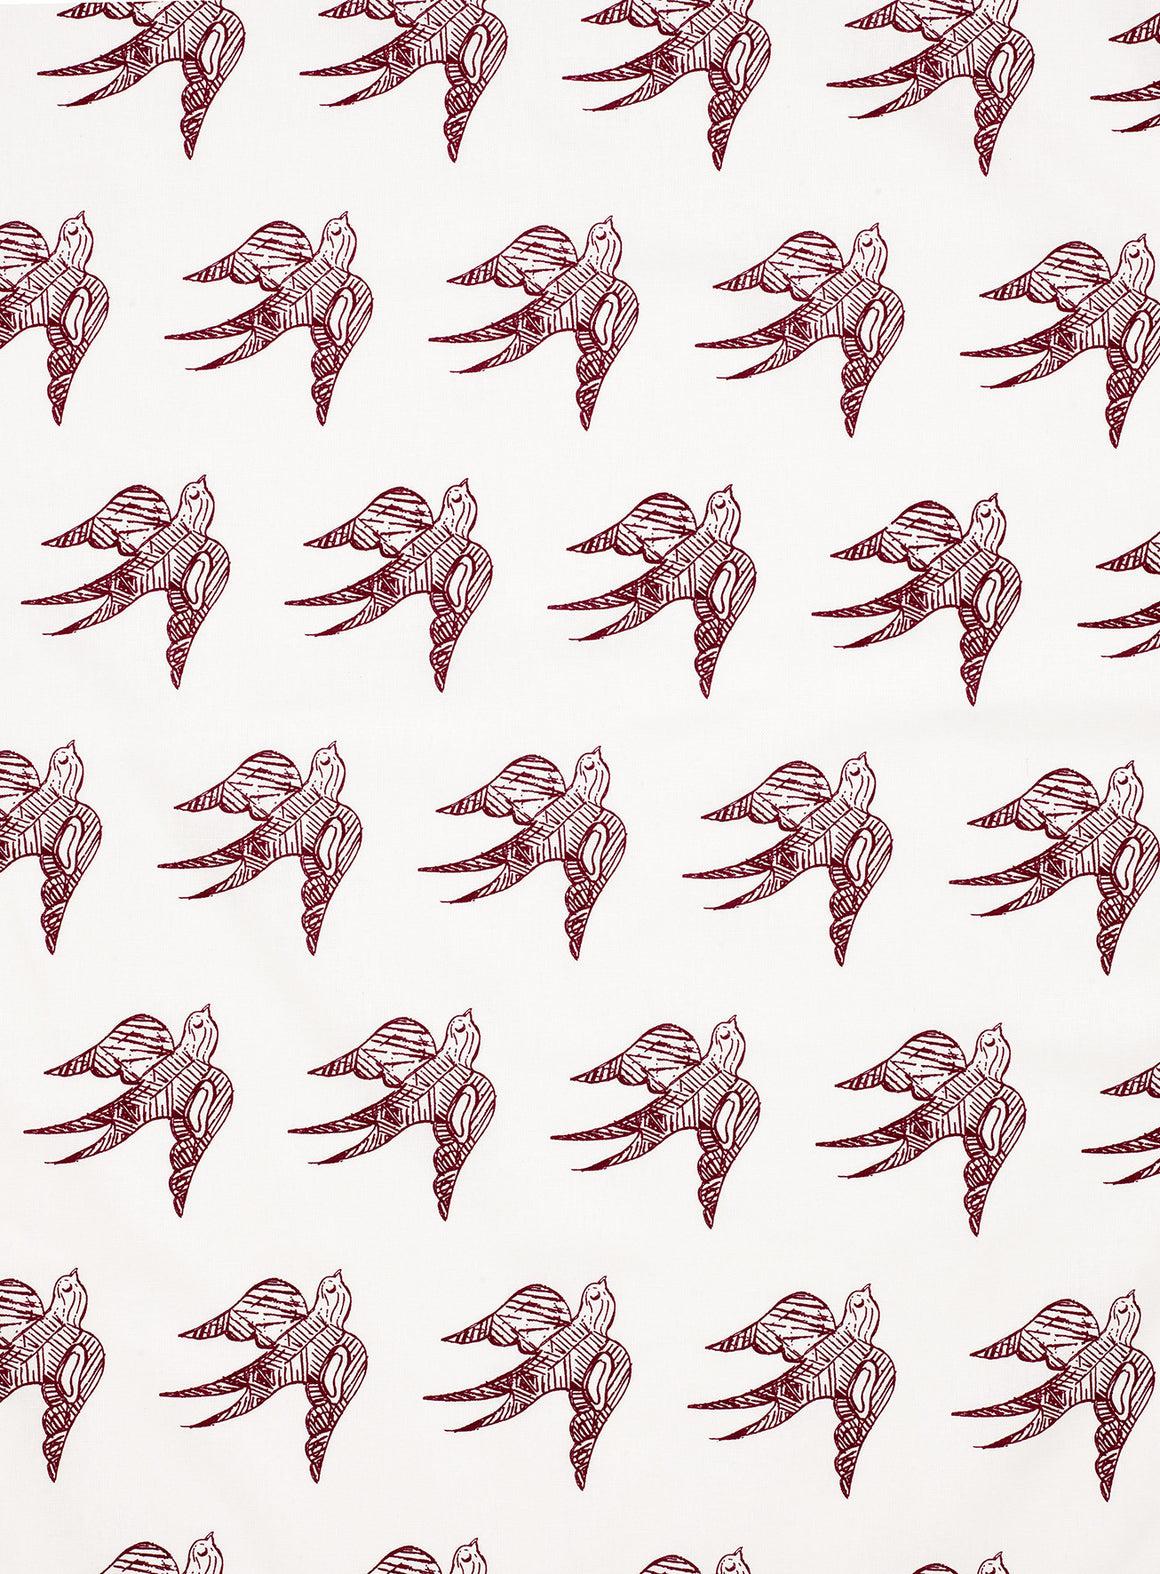 Katia Swallow Bird Pattern Linen Cotton Designer Home Decor Fabric by the Meter or yard in Dark Vermilion Red for curtains, blinds, upholstery ships from Canada (USA)